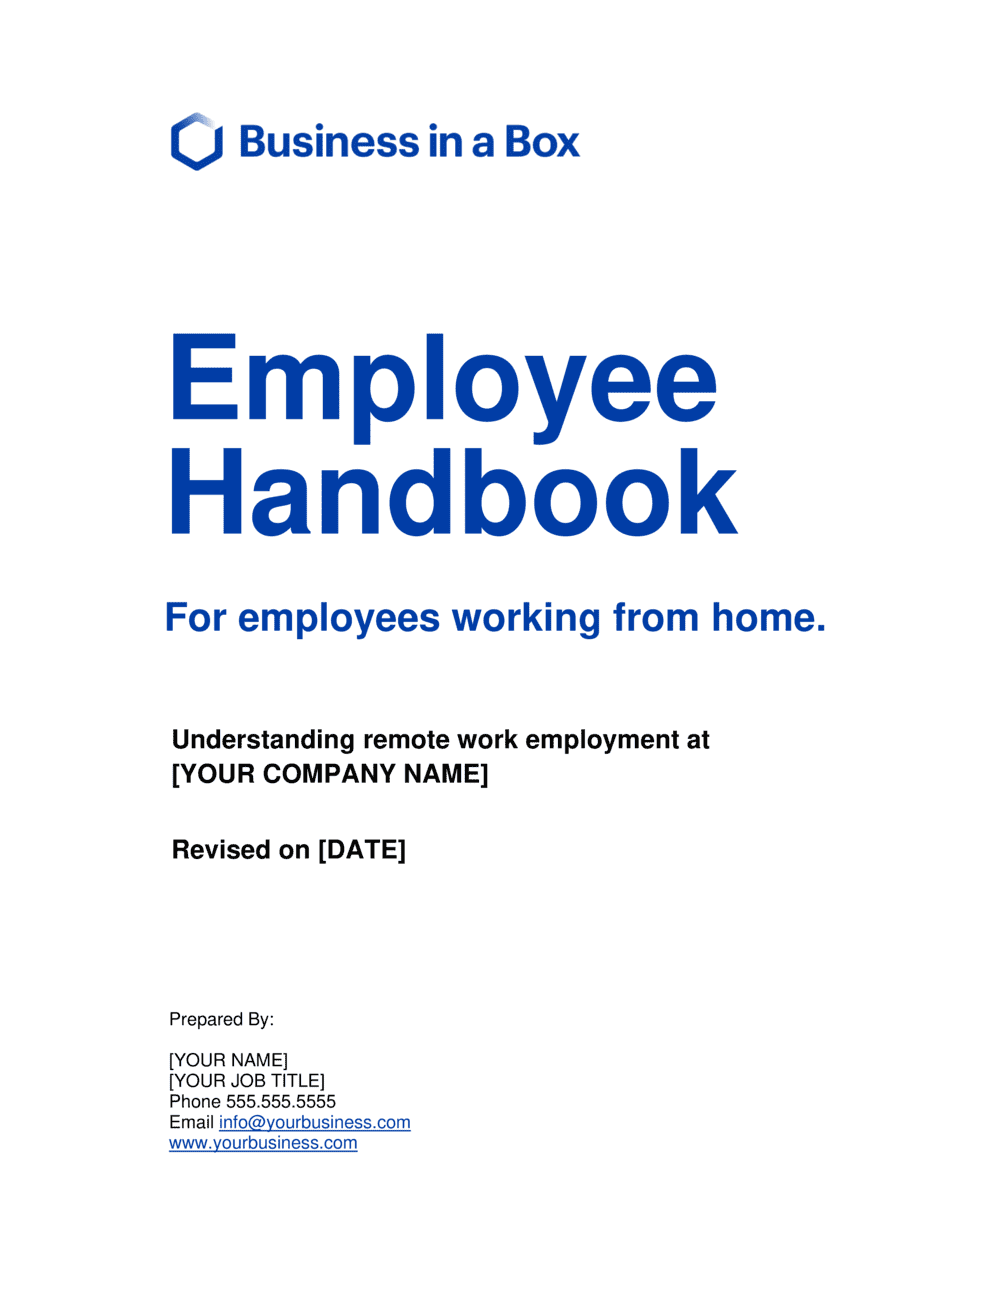 Business-in-a-Box's Employee Handbook For Employees Working From Home Template